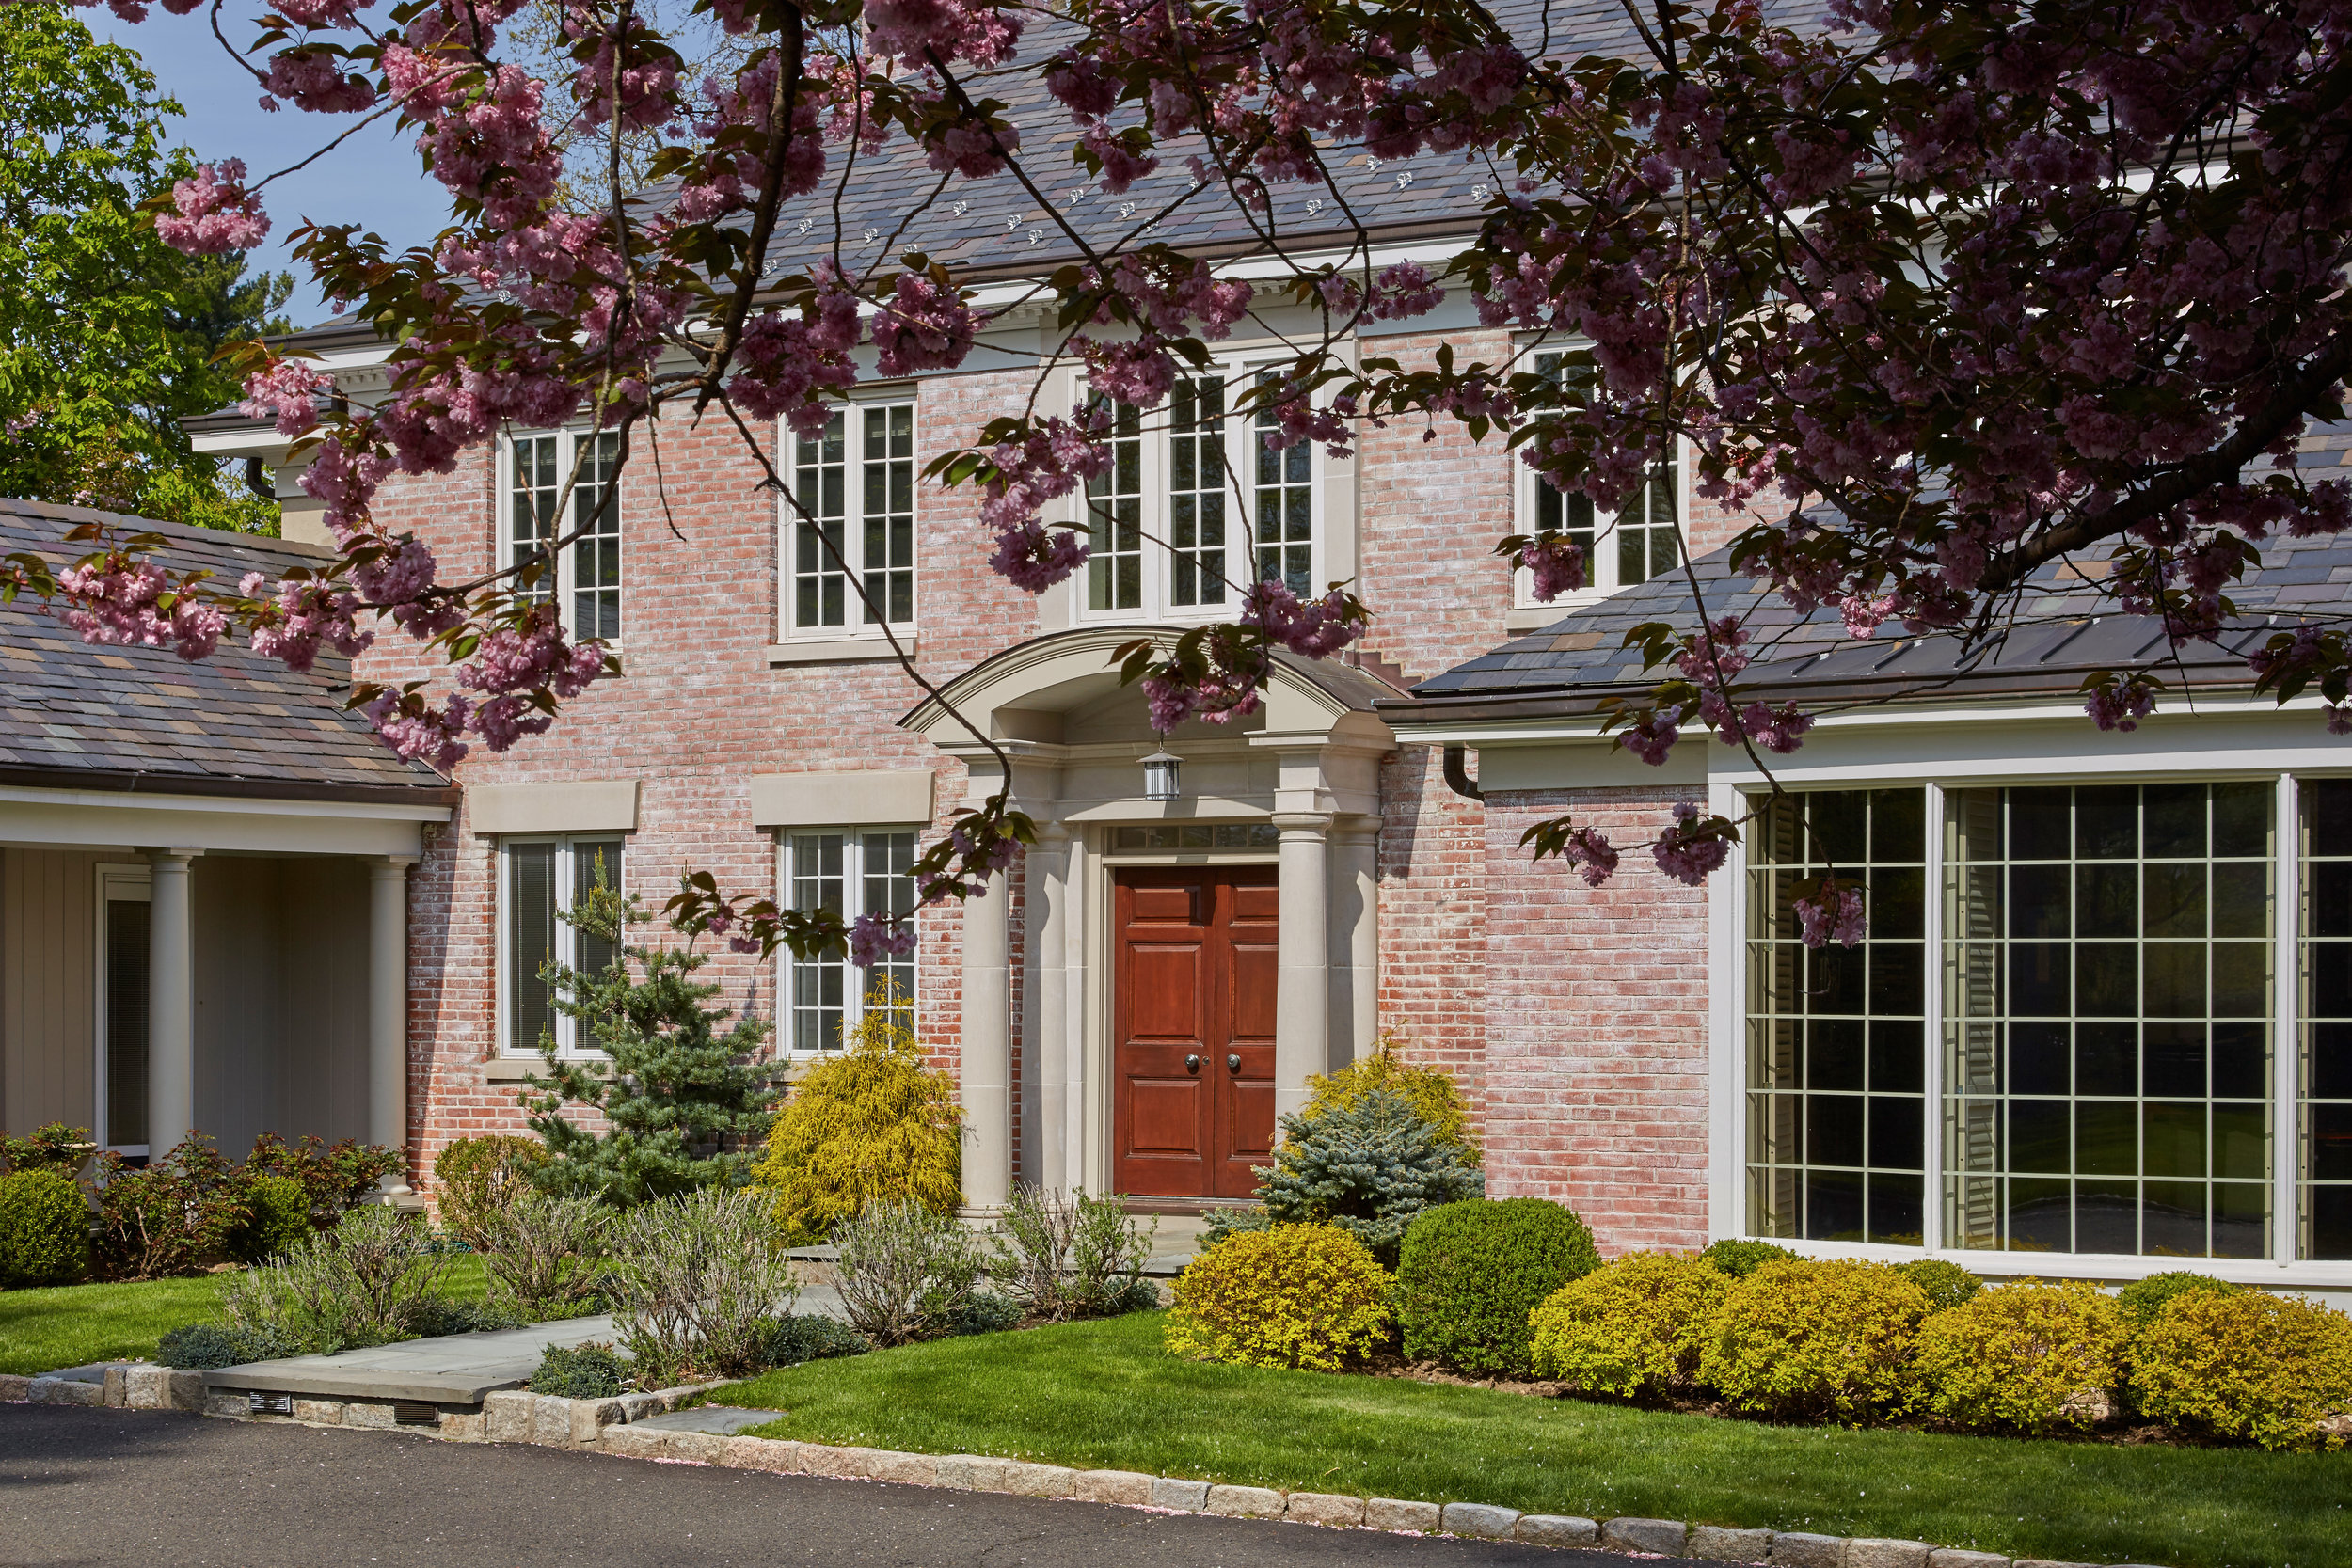 SOLD  7 Dolma Road Scarsdale, NY | Exquisite estate in Scarsdale's prestigious Murray Hill neighborhood. Represented the Sellers as the Listing Agent  (2017)